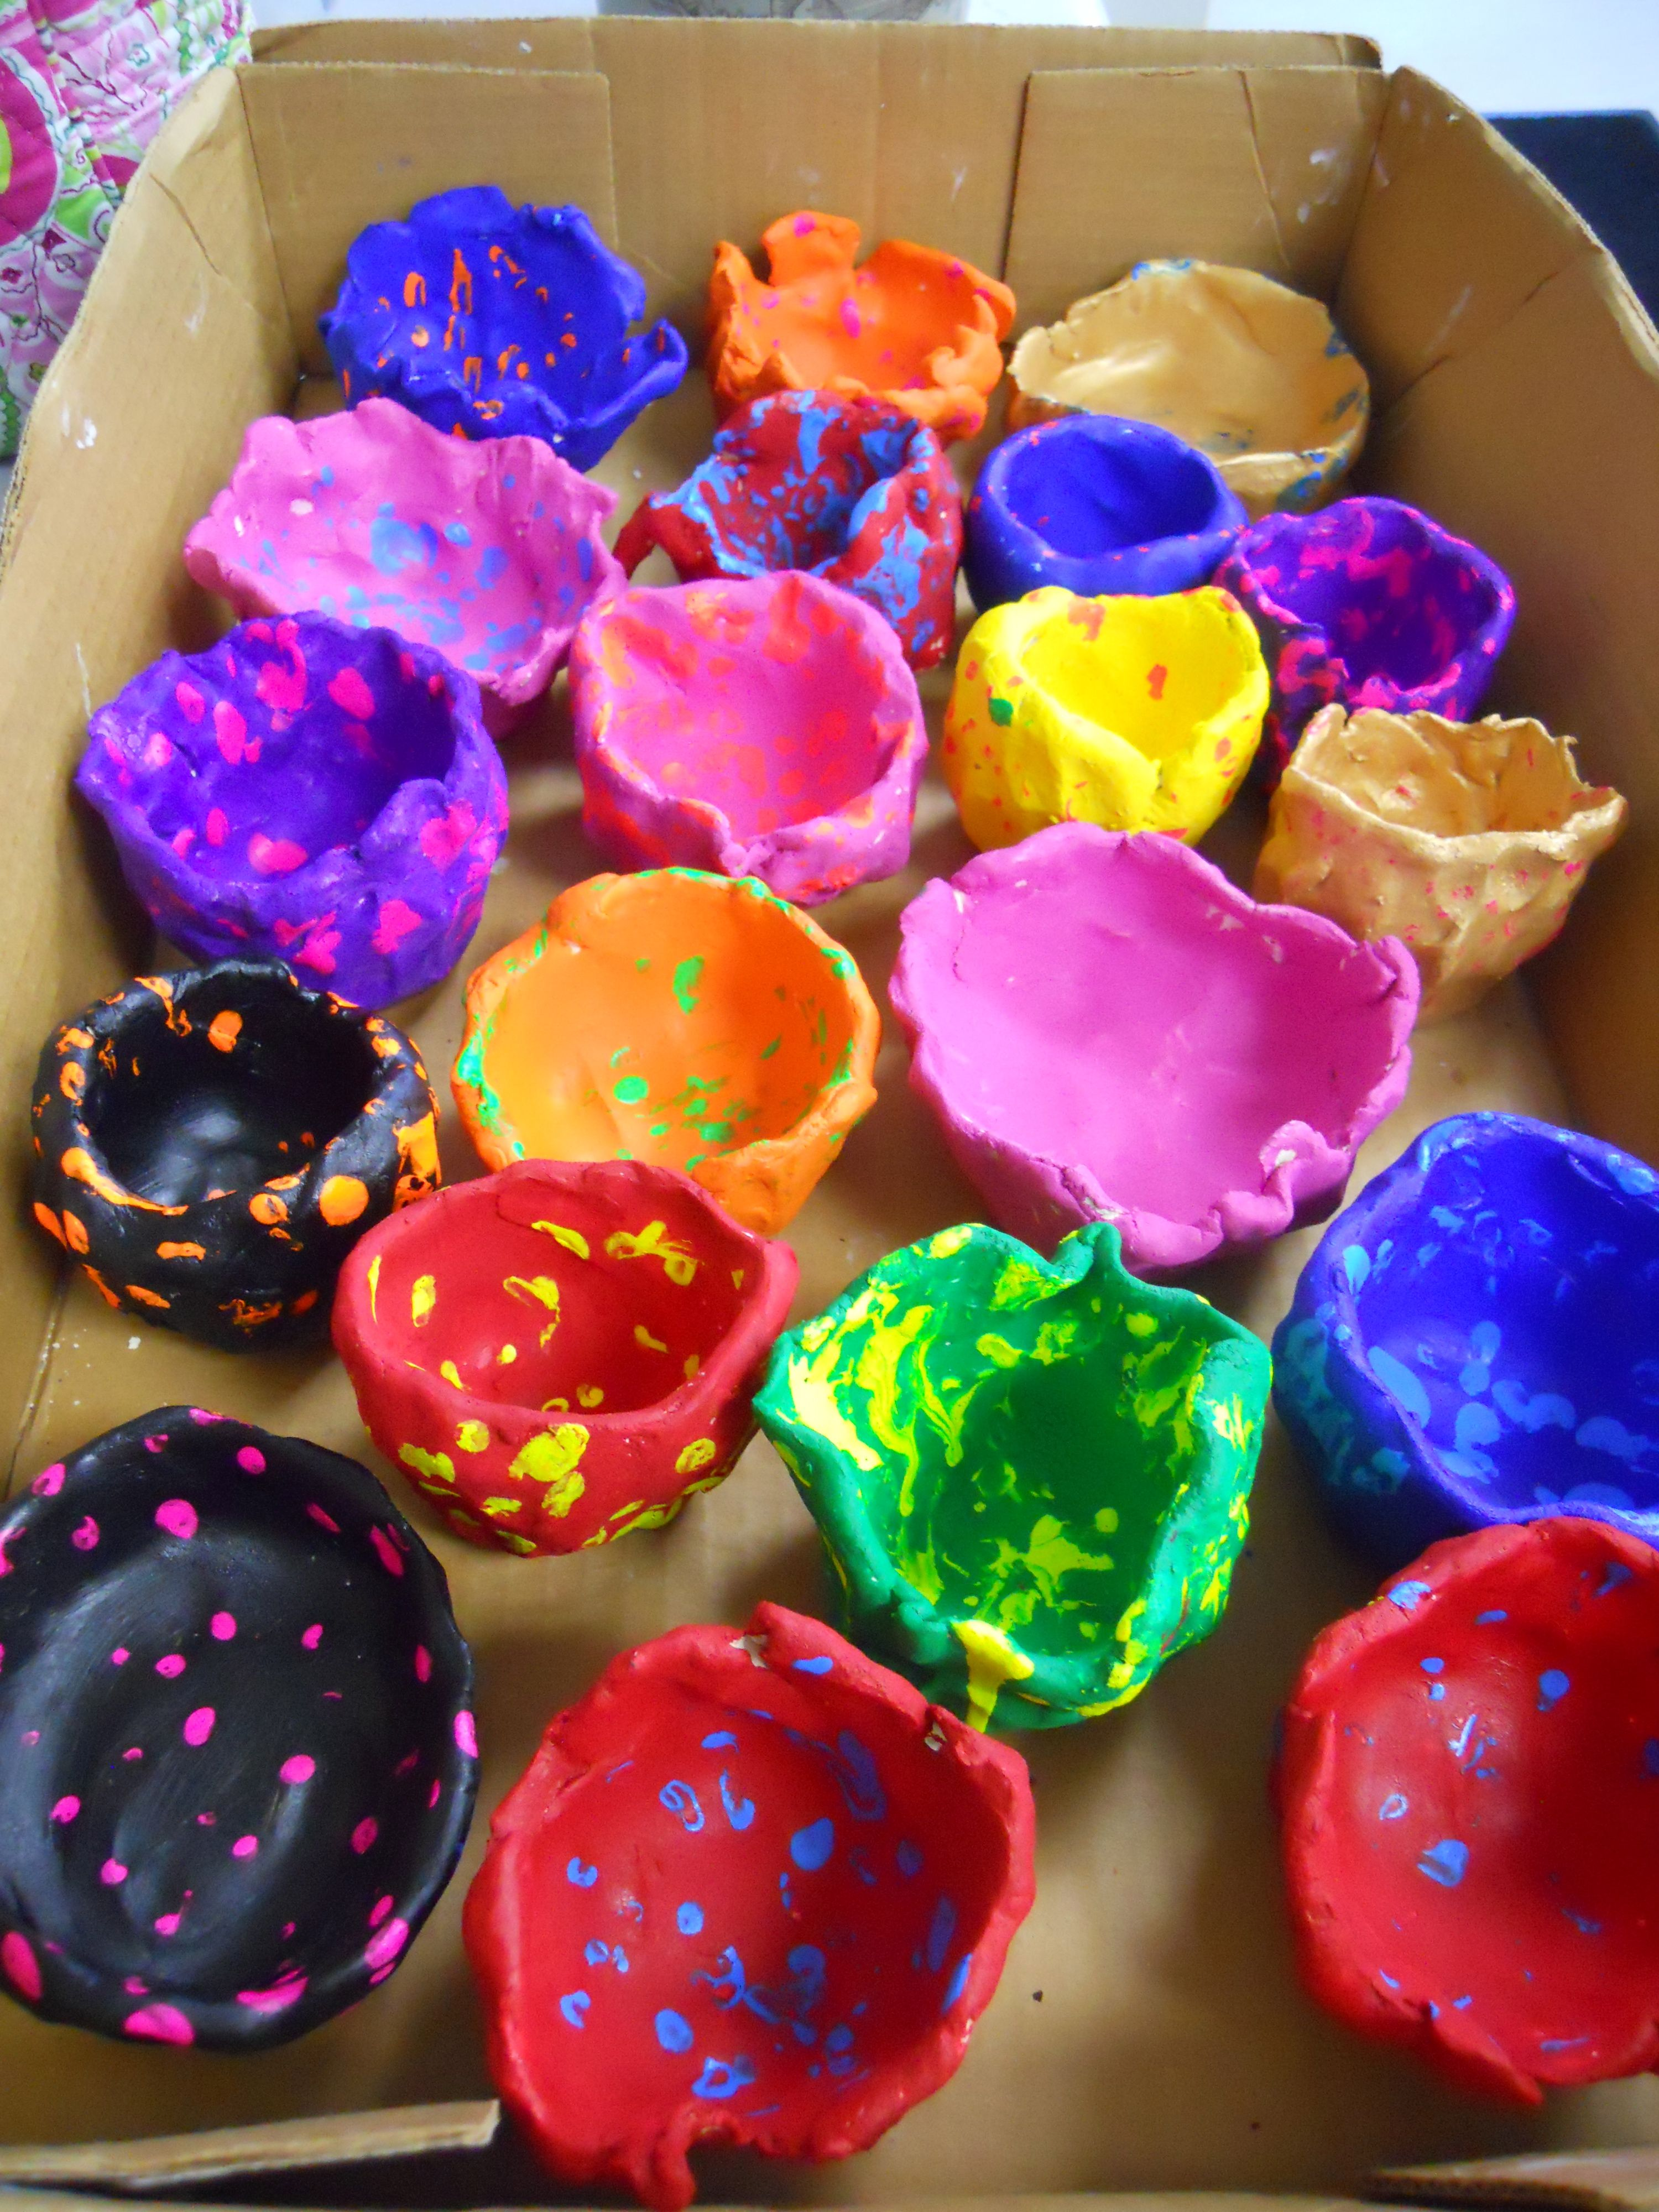 Monday Night Vbs Craft Pinch Pots